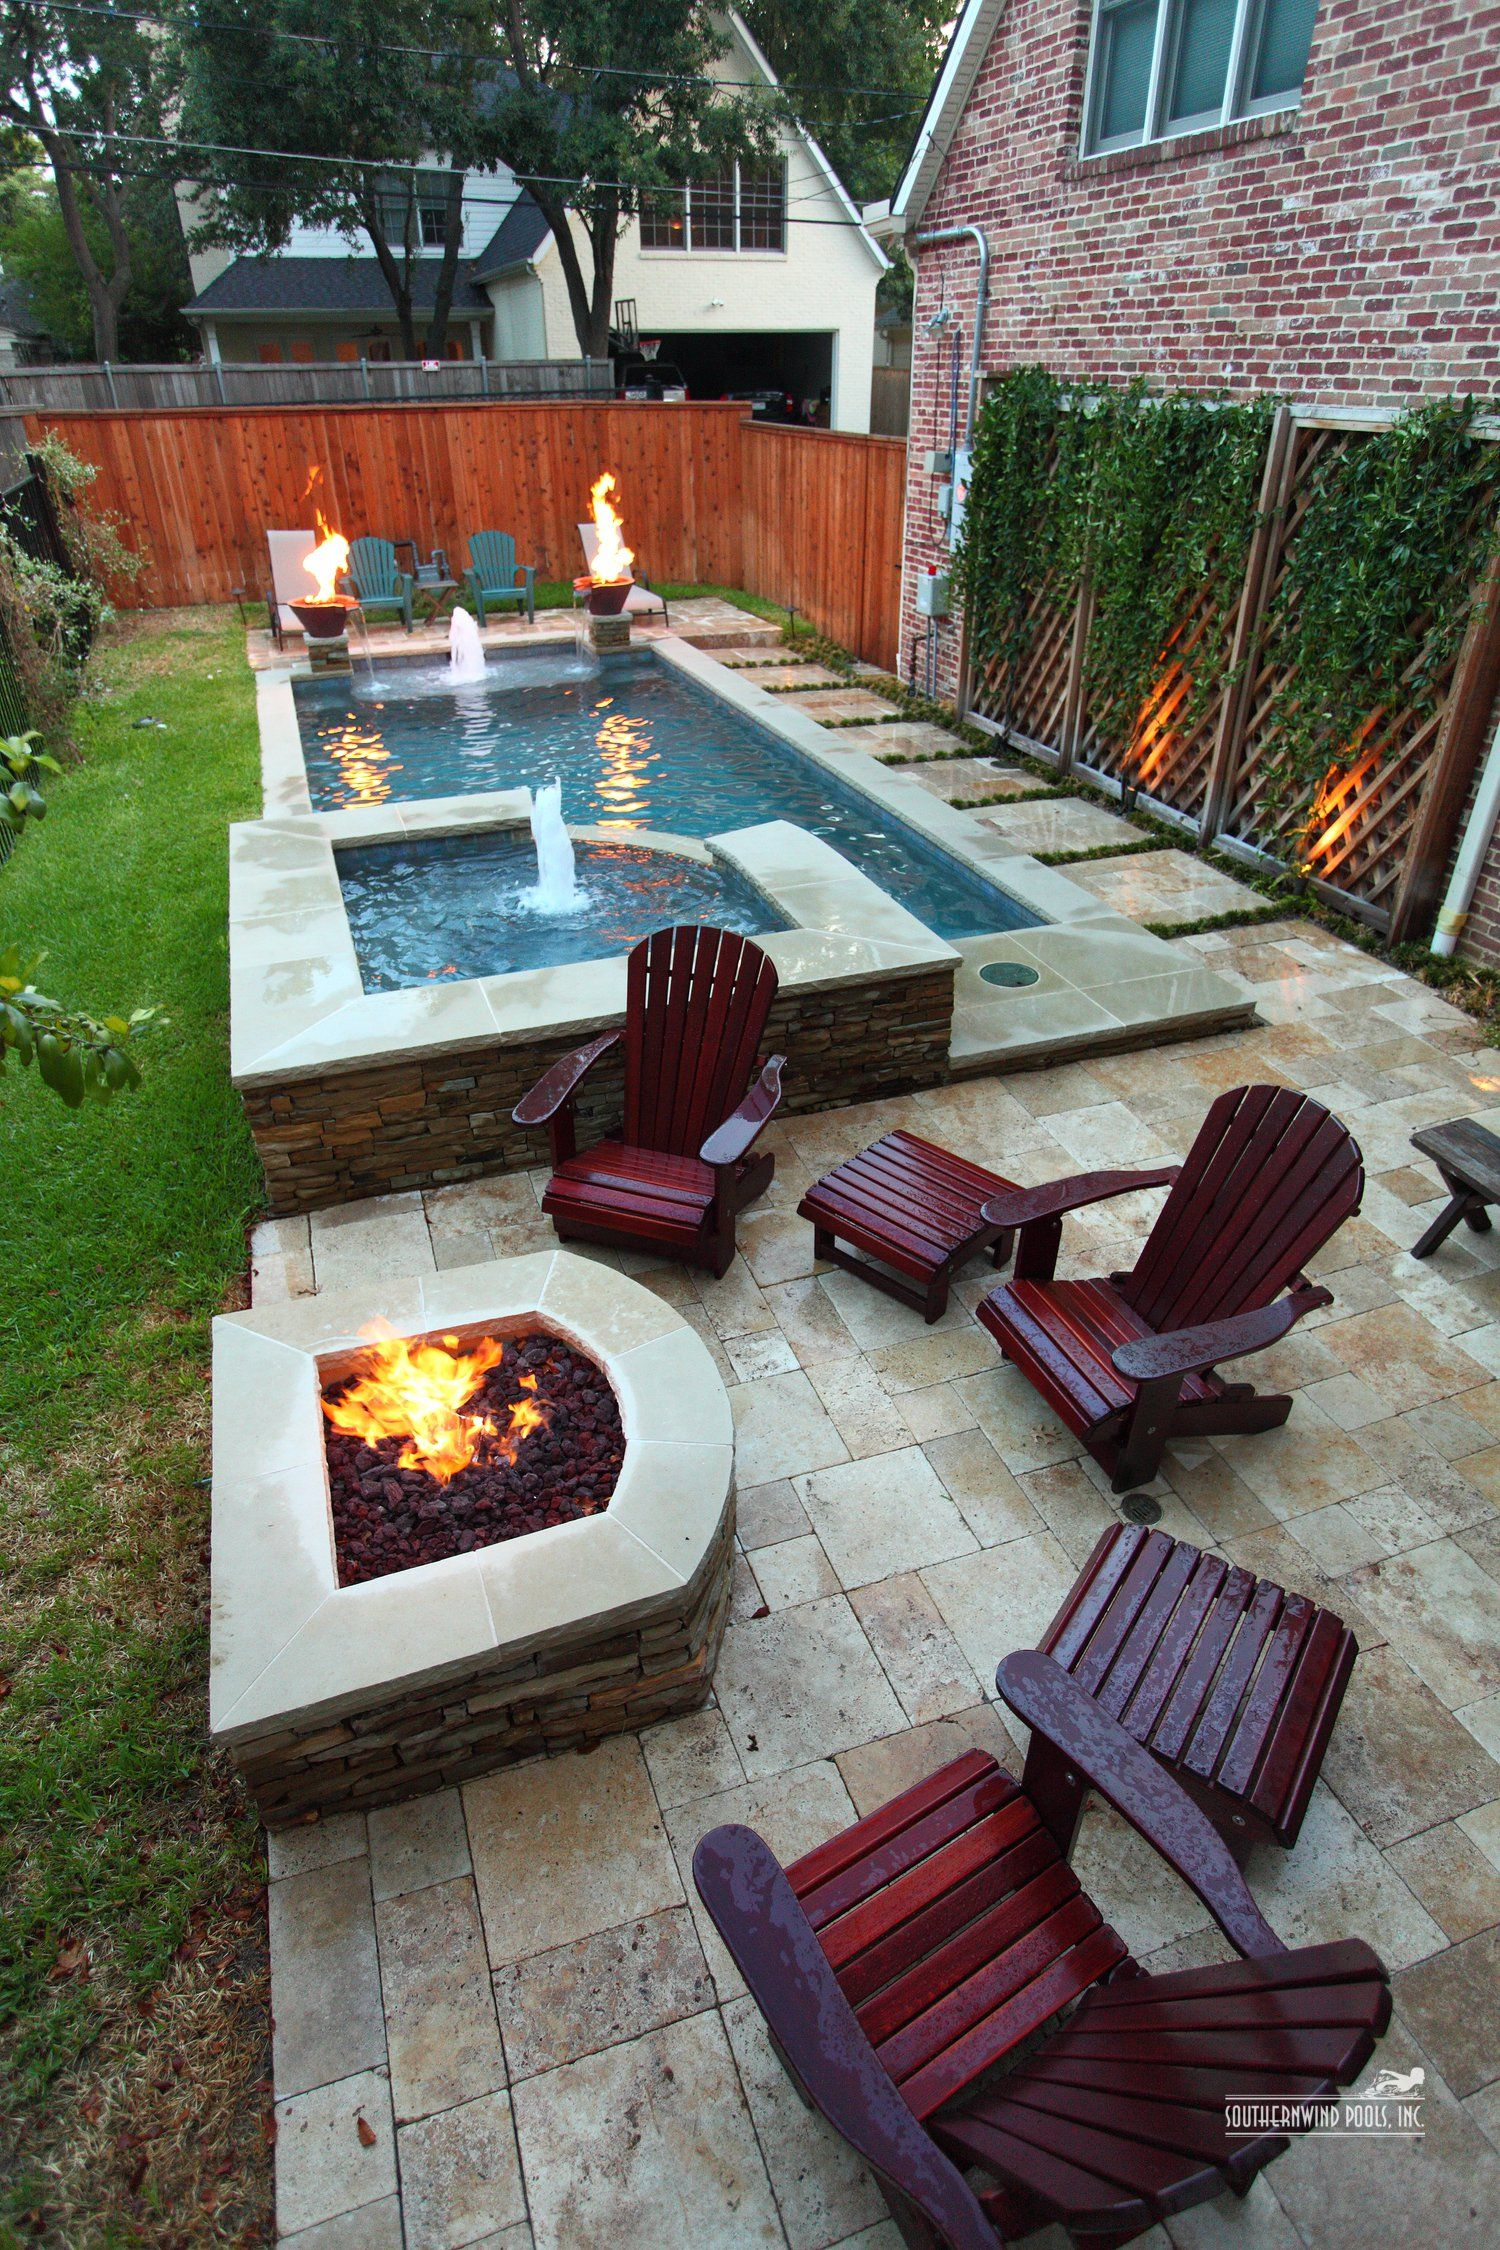 narrow pool with hot tub + firepit - great for small spaces - Narrow Pool With Hot Tub + Firepit - Great For Small Spaces In My